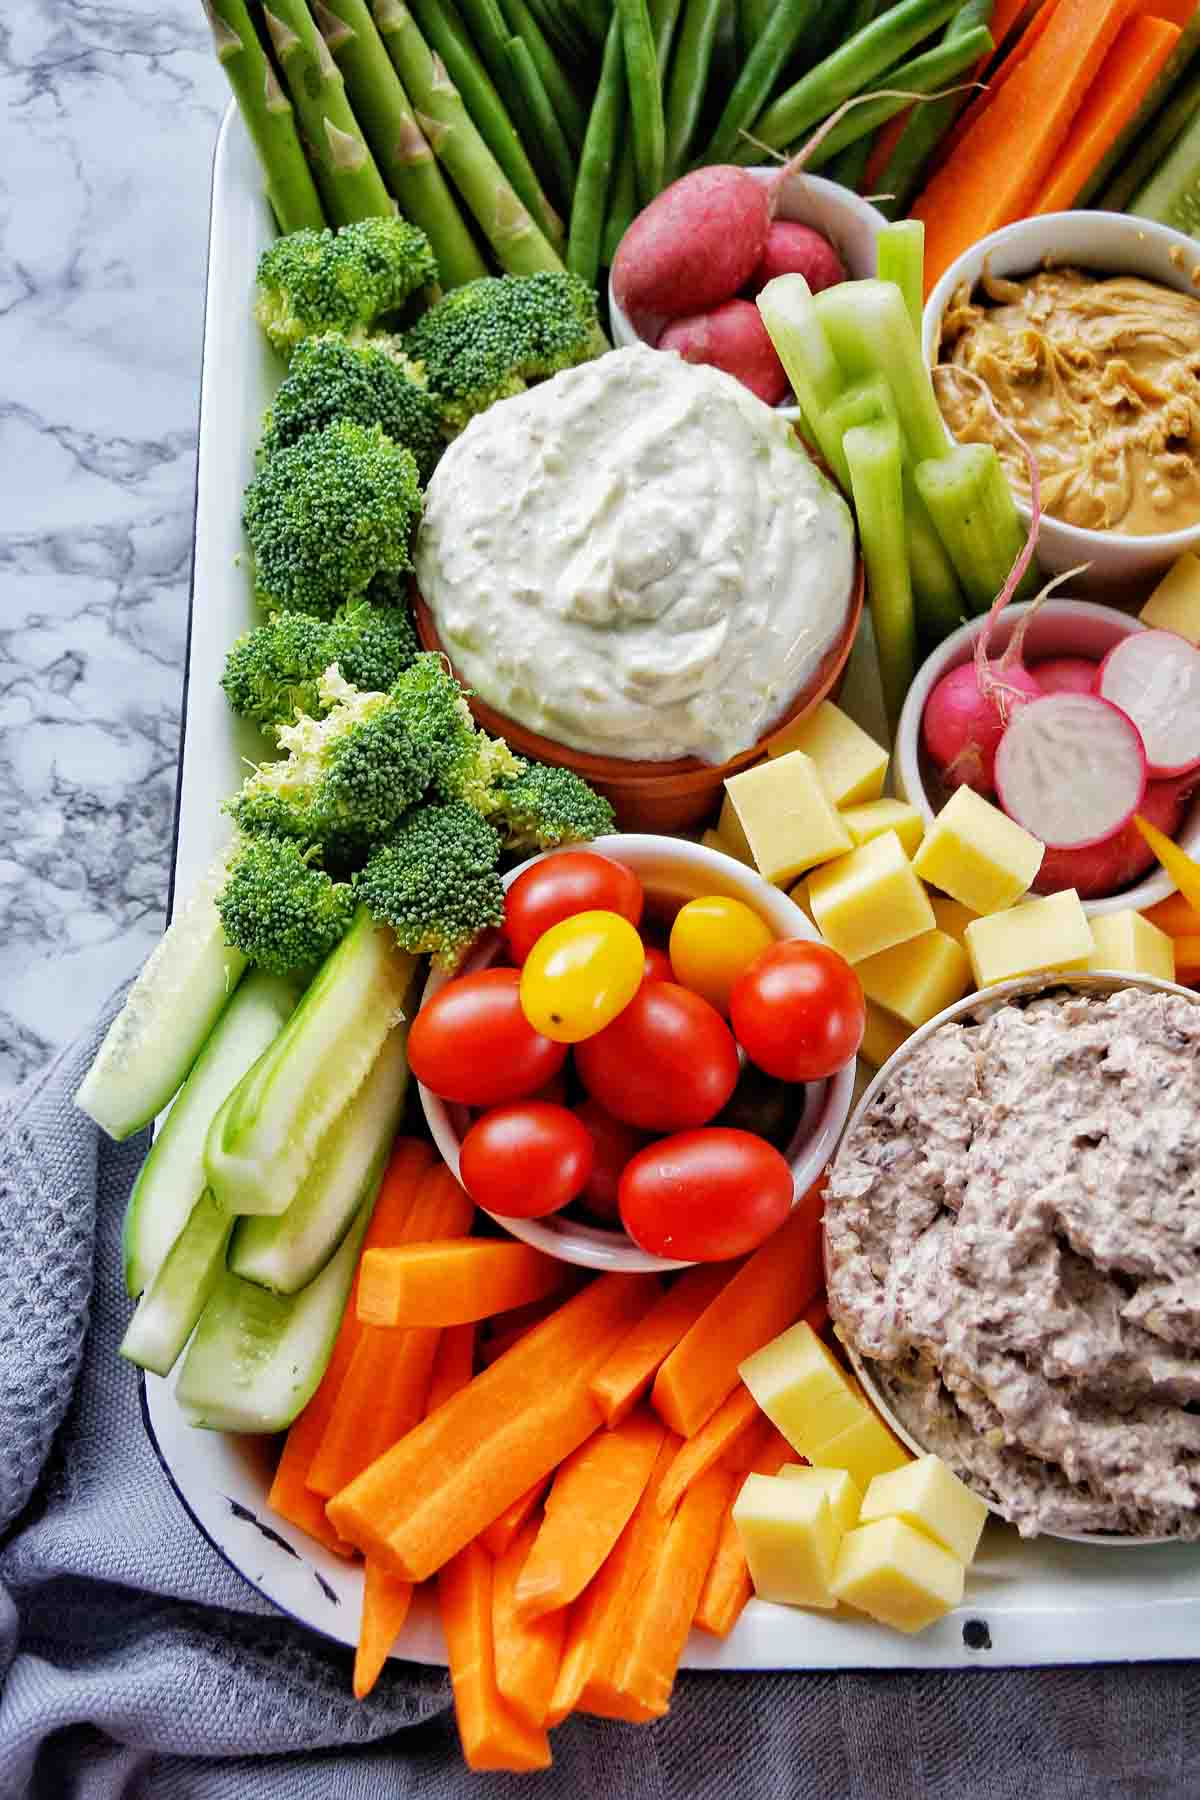 Carrots celery tomatoes and dip in vegetable tray